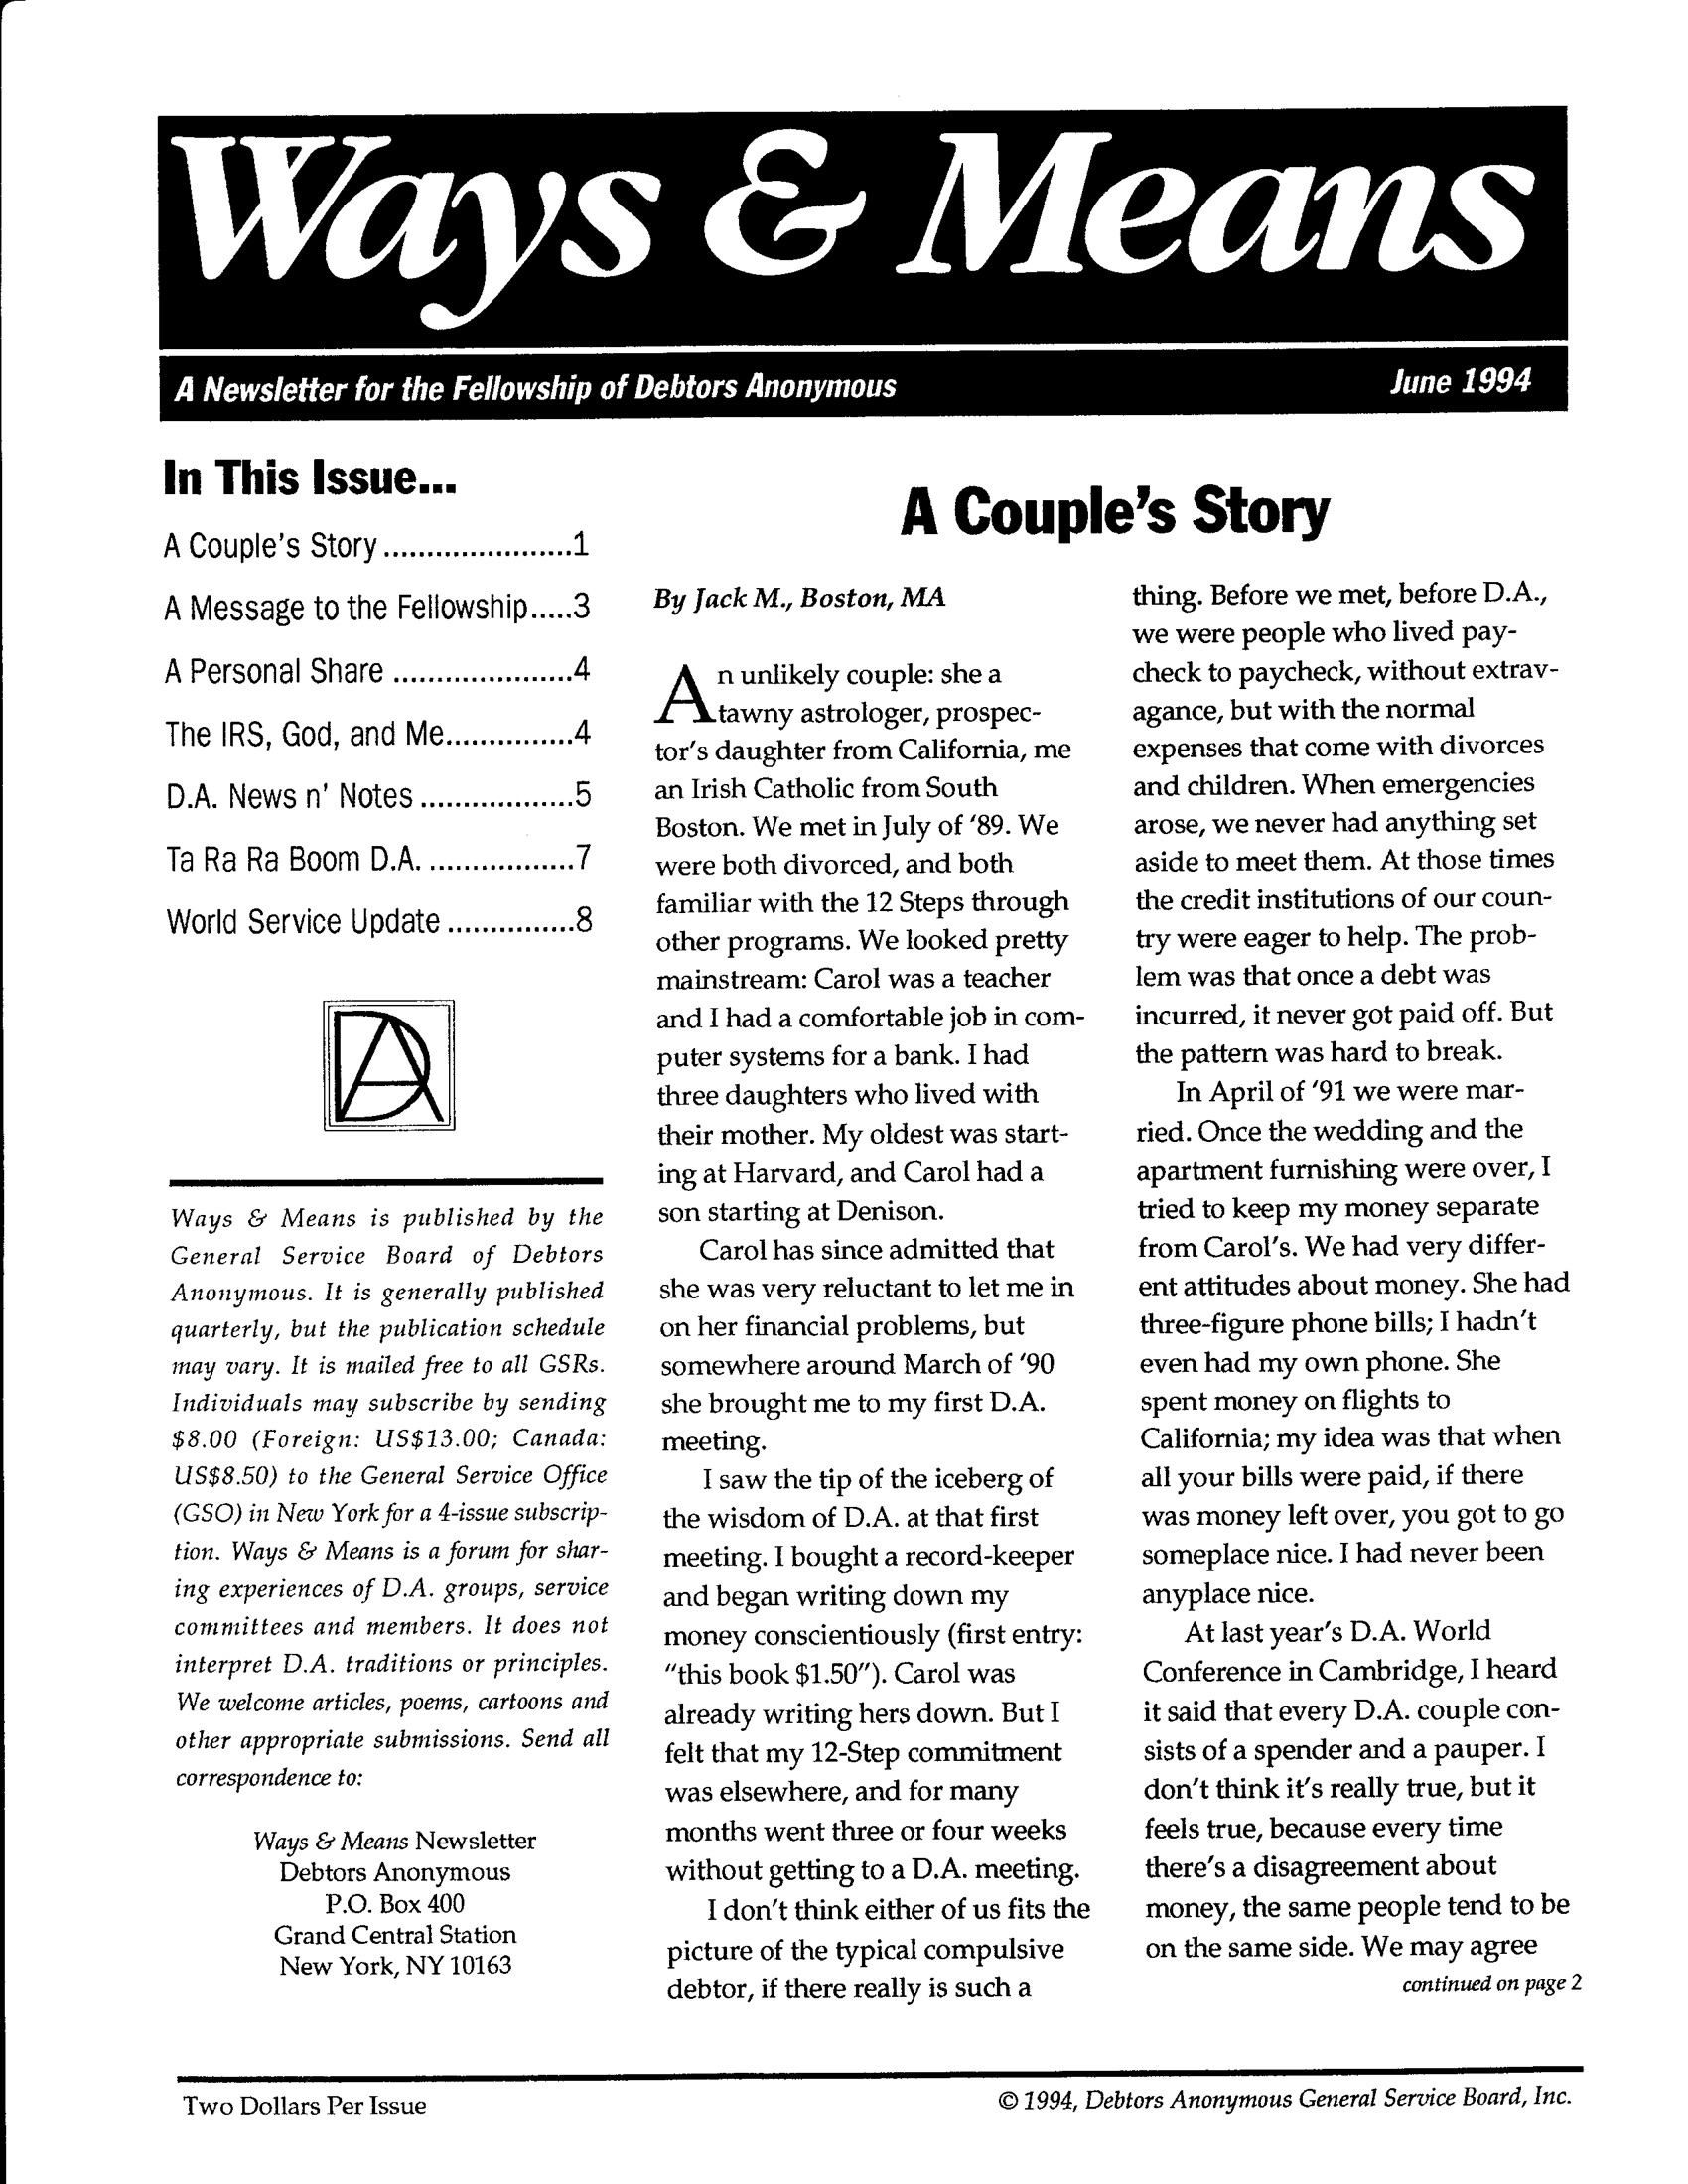 Ways & Means 2nd QTR 1994